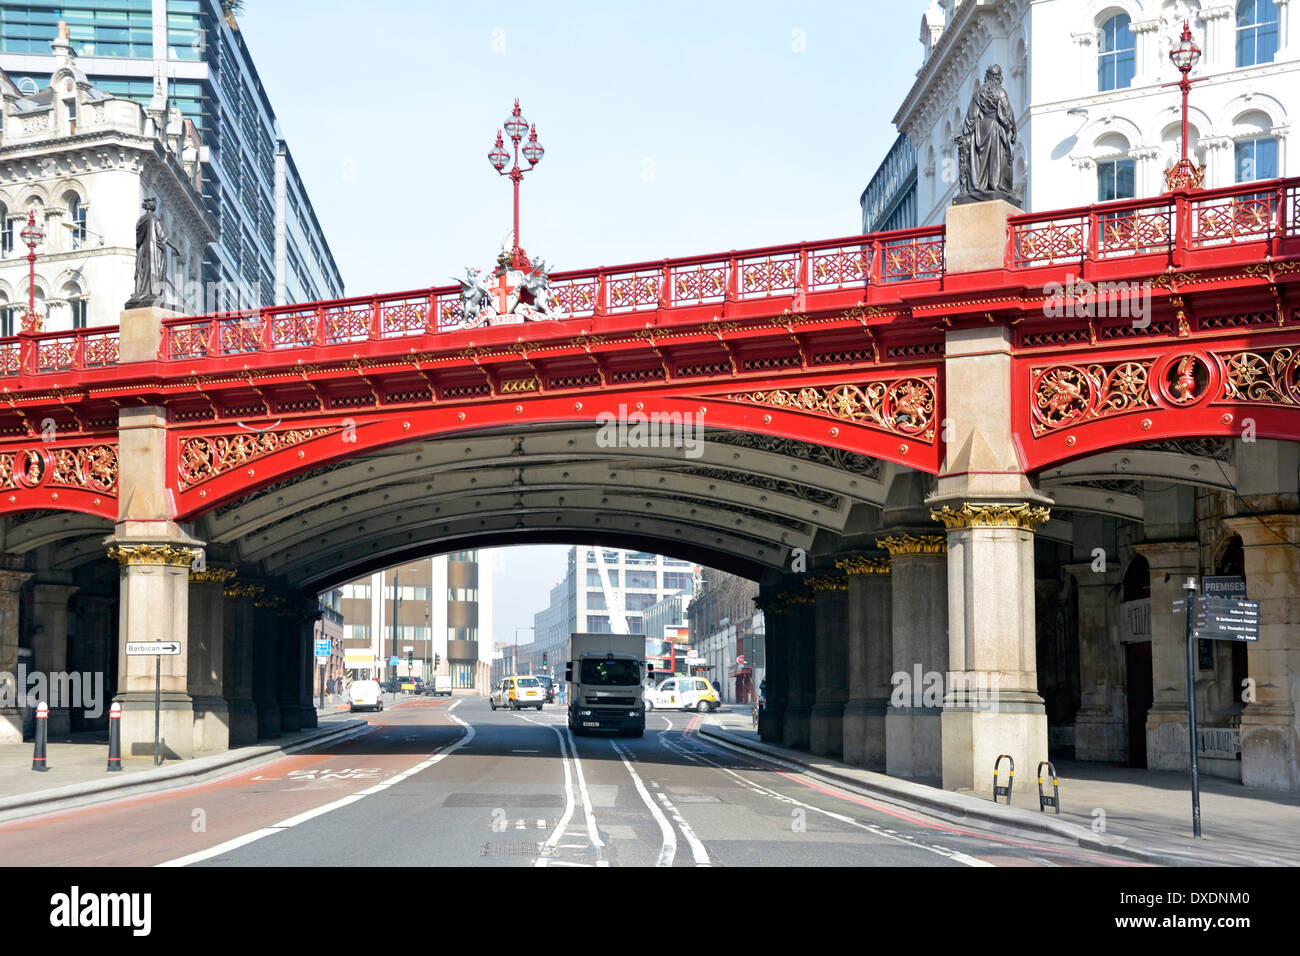 Holborn Viaduct  road bridge crossing over Farringdon Street in City of London (claimed to be first flyover in central - Stock Image